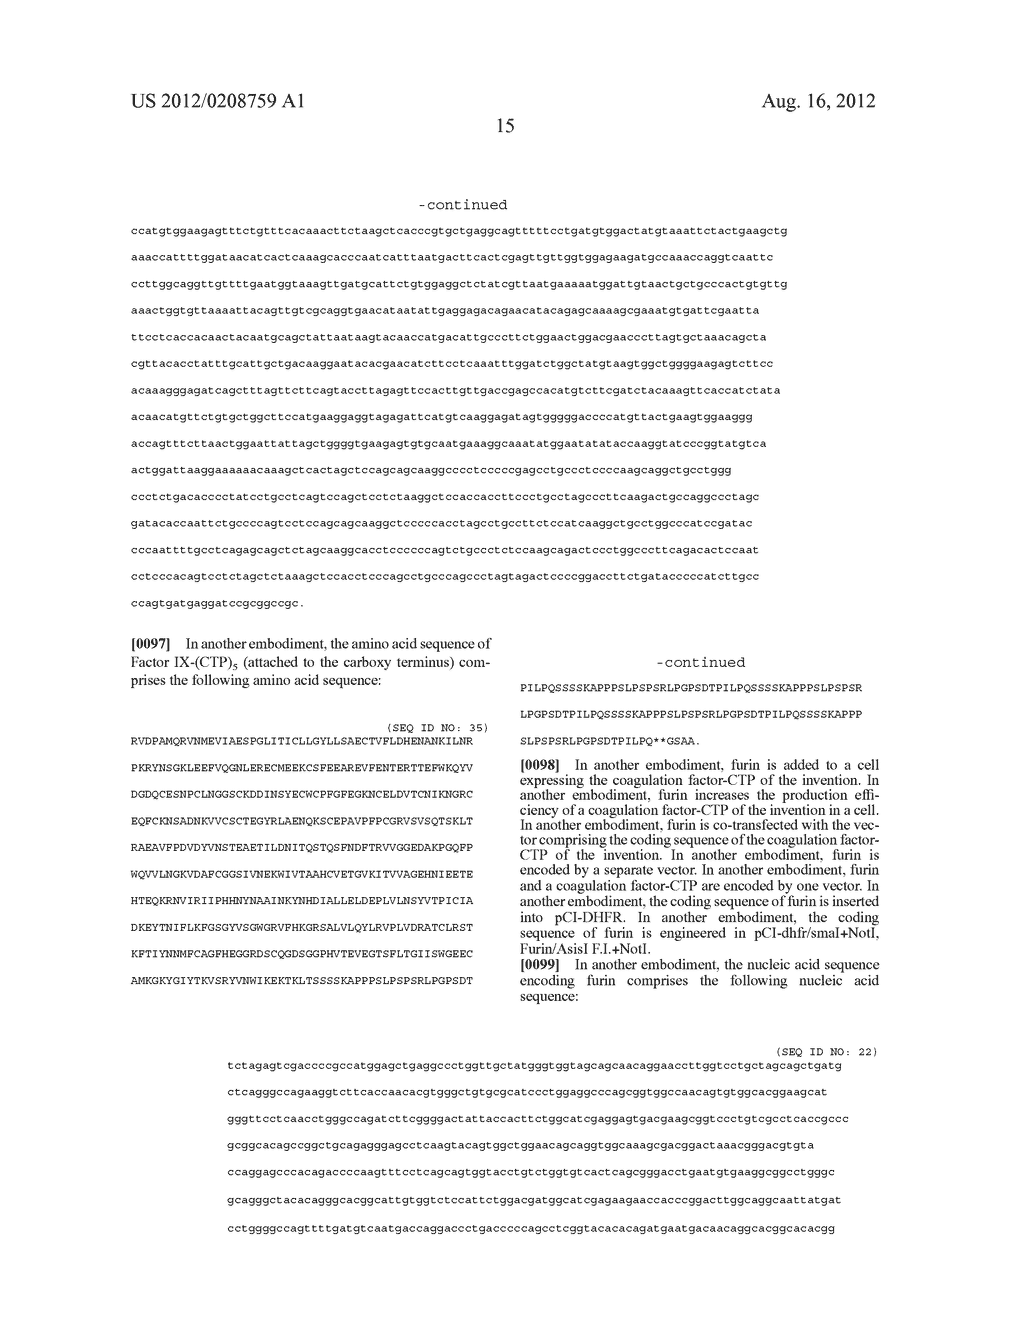 LONG-ACTING COAGULATION FACTORS AND METHODS OF PRODUCING SAME - diagram, schematic, and image 39